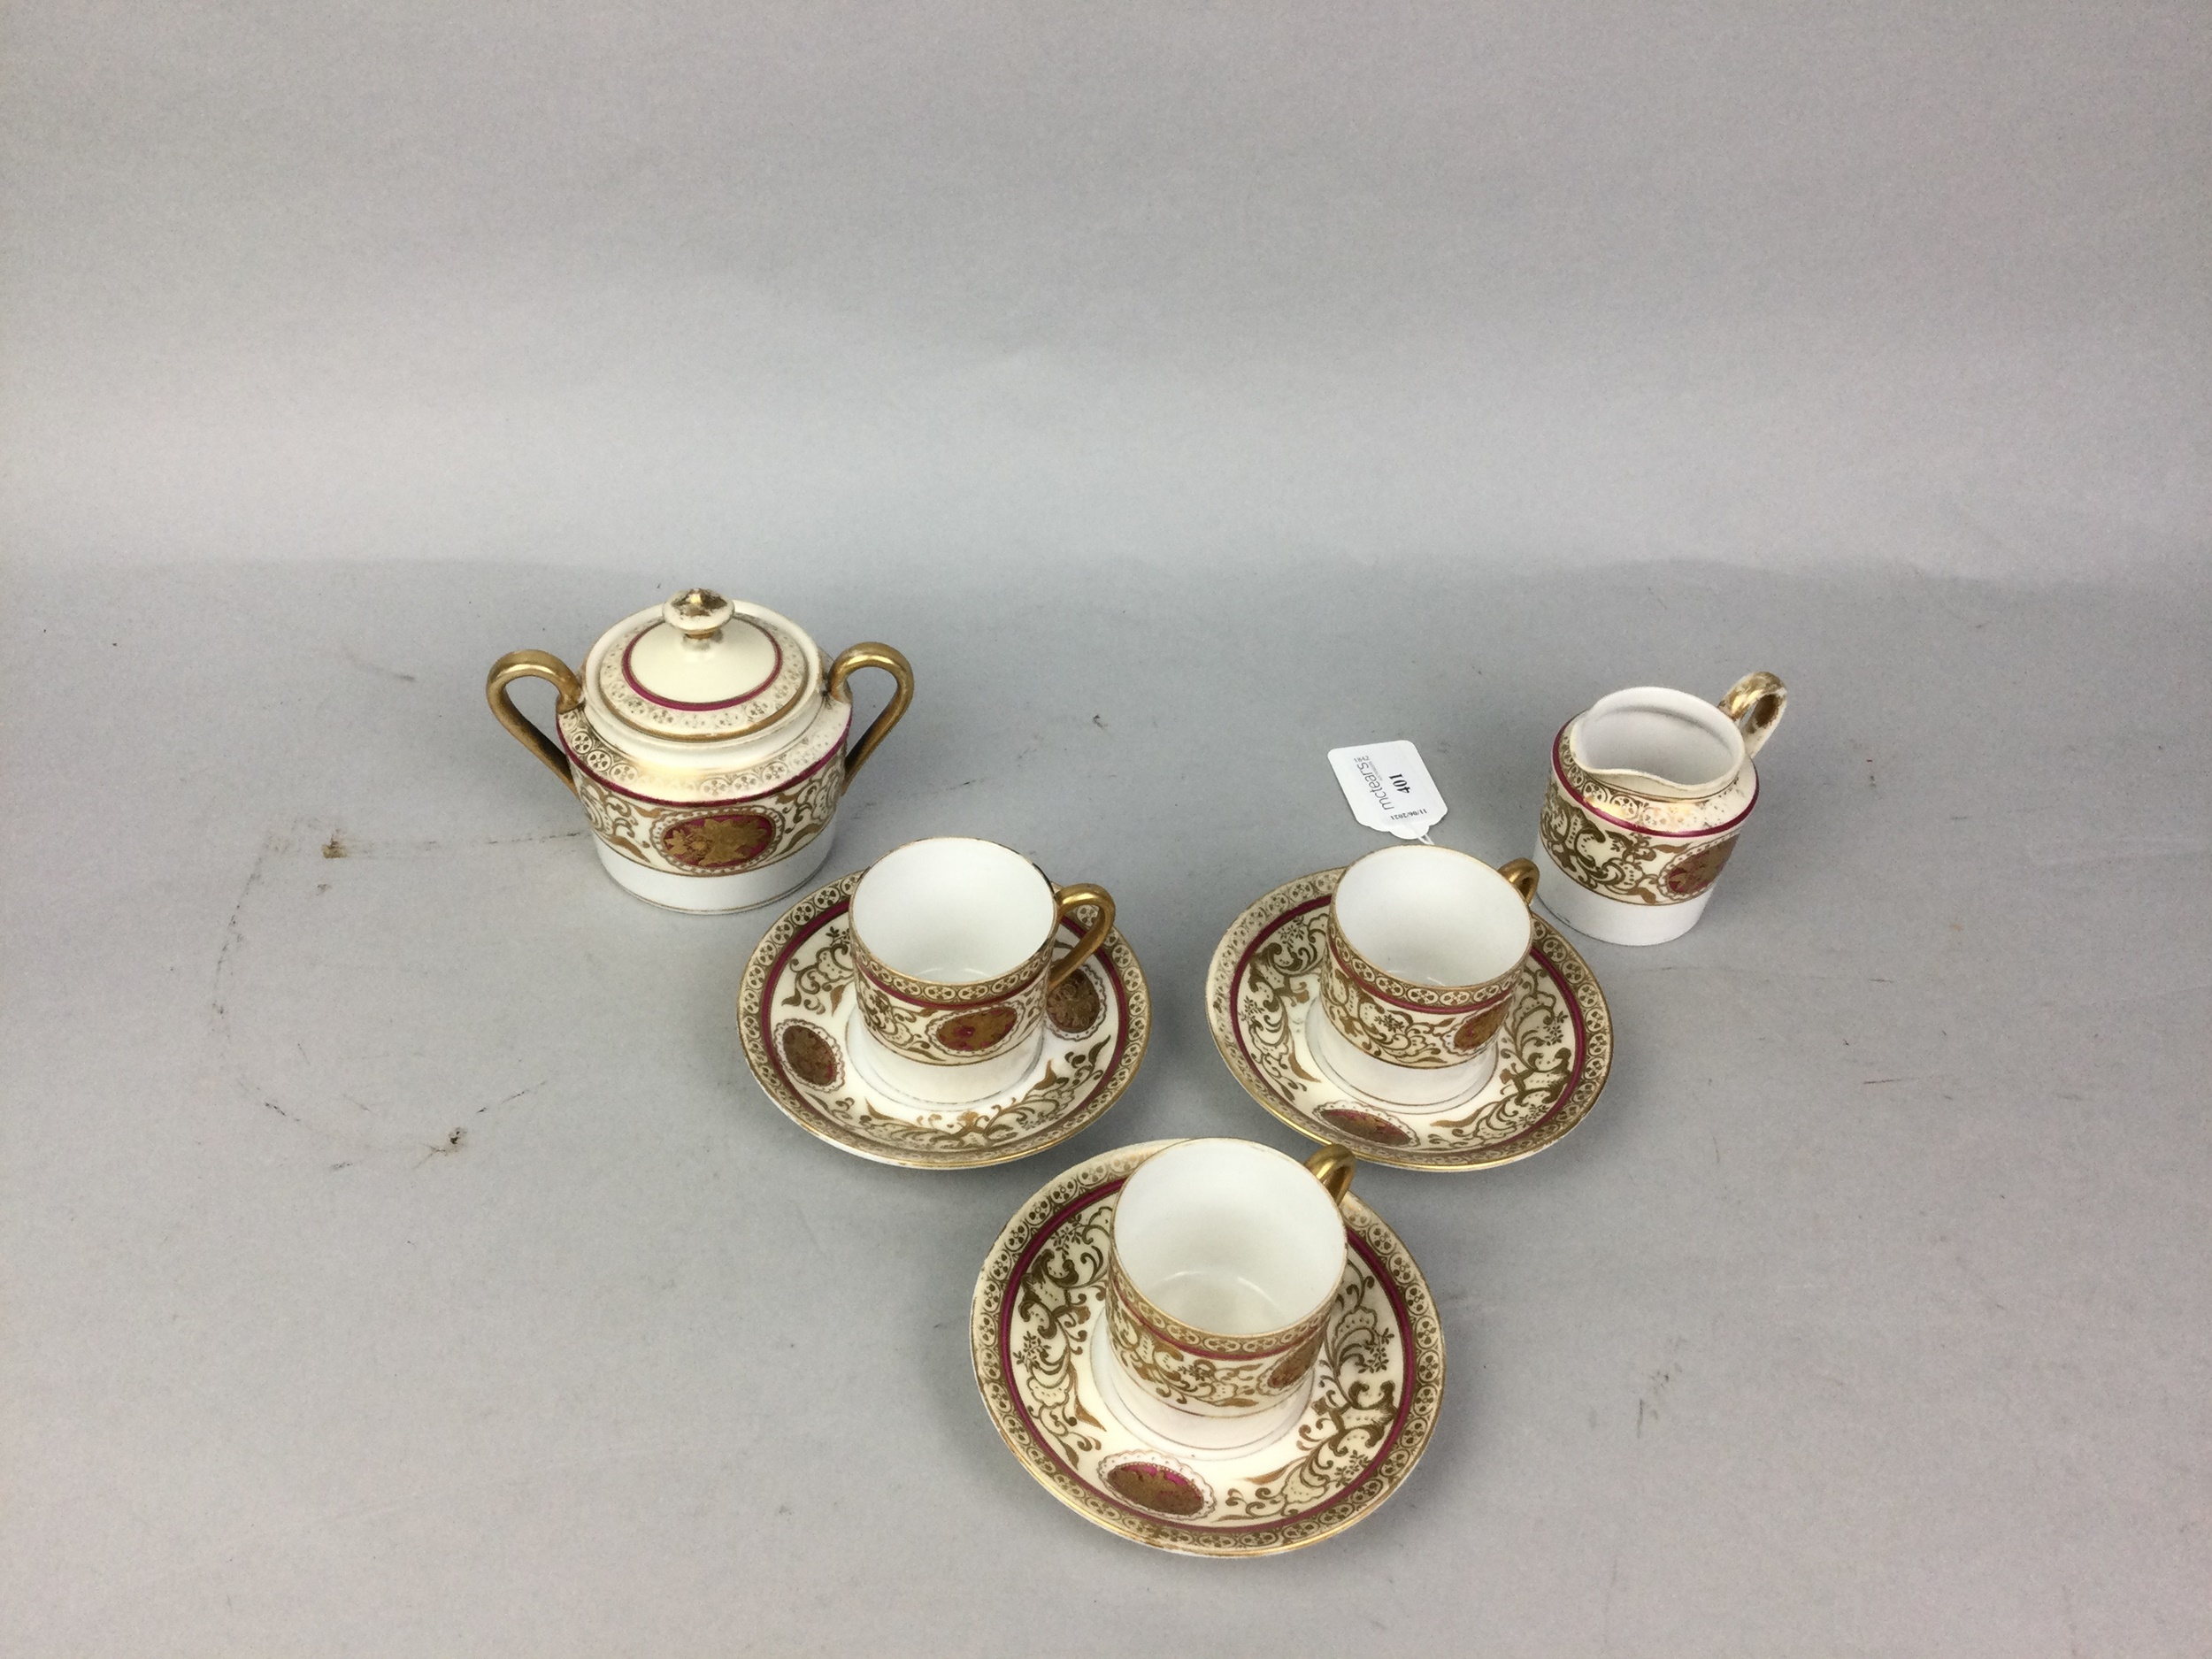 A JAPANESE PART COFFEE SERVICE AND OTHER CERAMICS